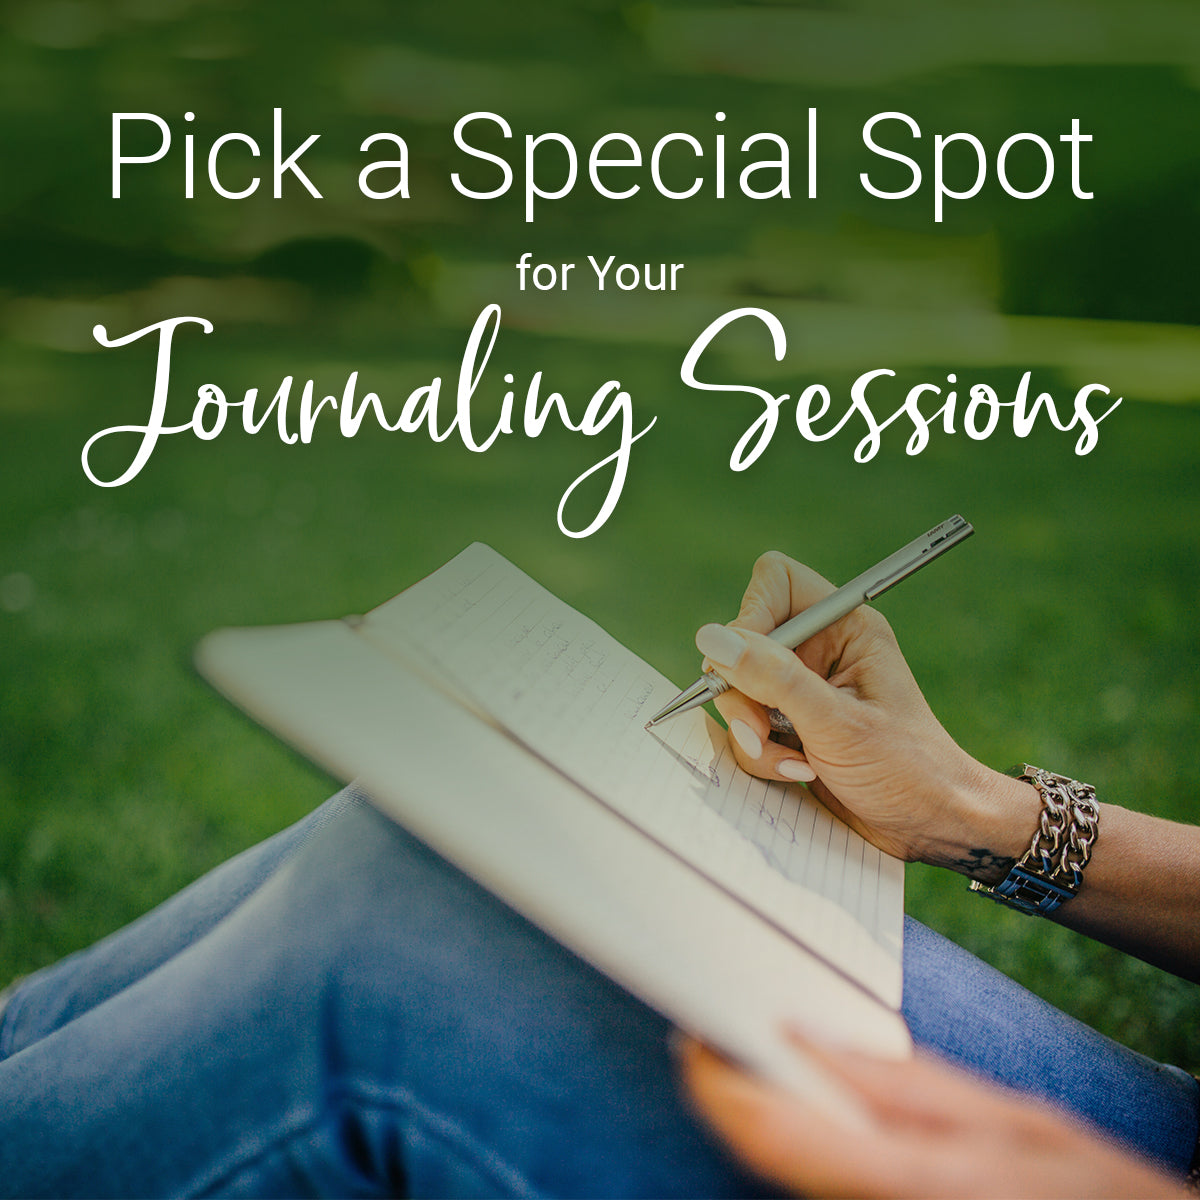 pick a special spot for your journaling sessions